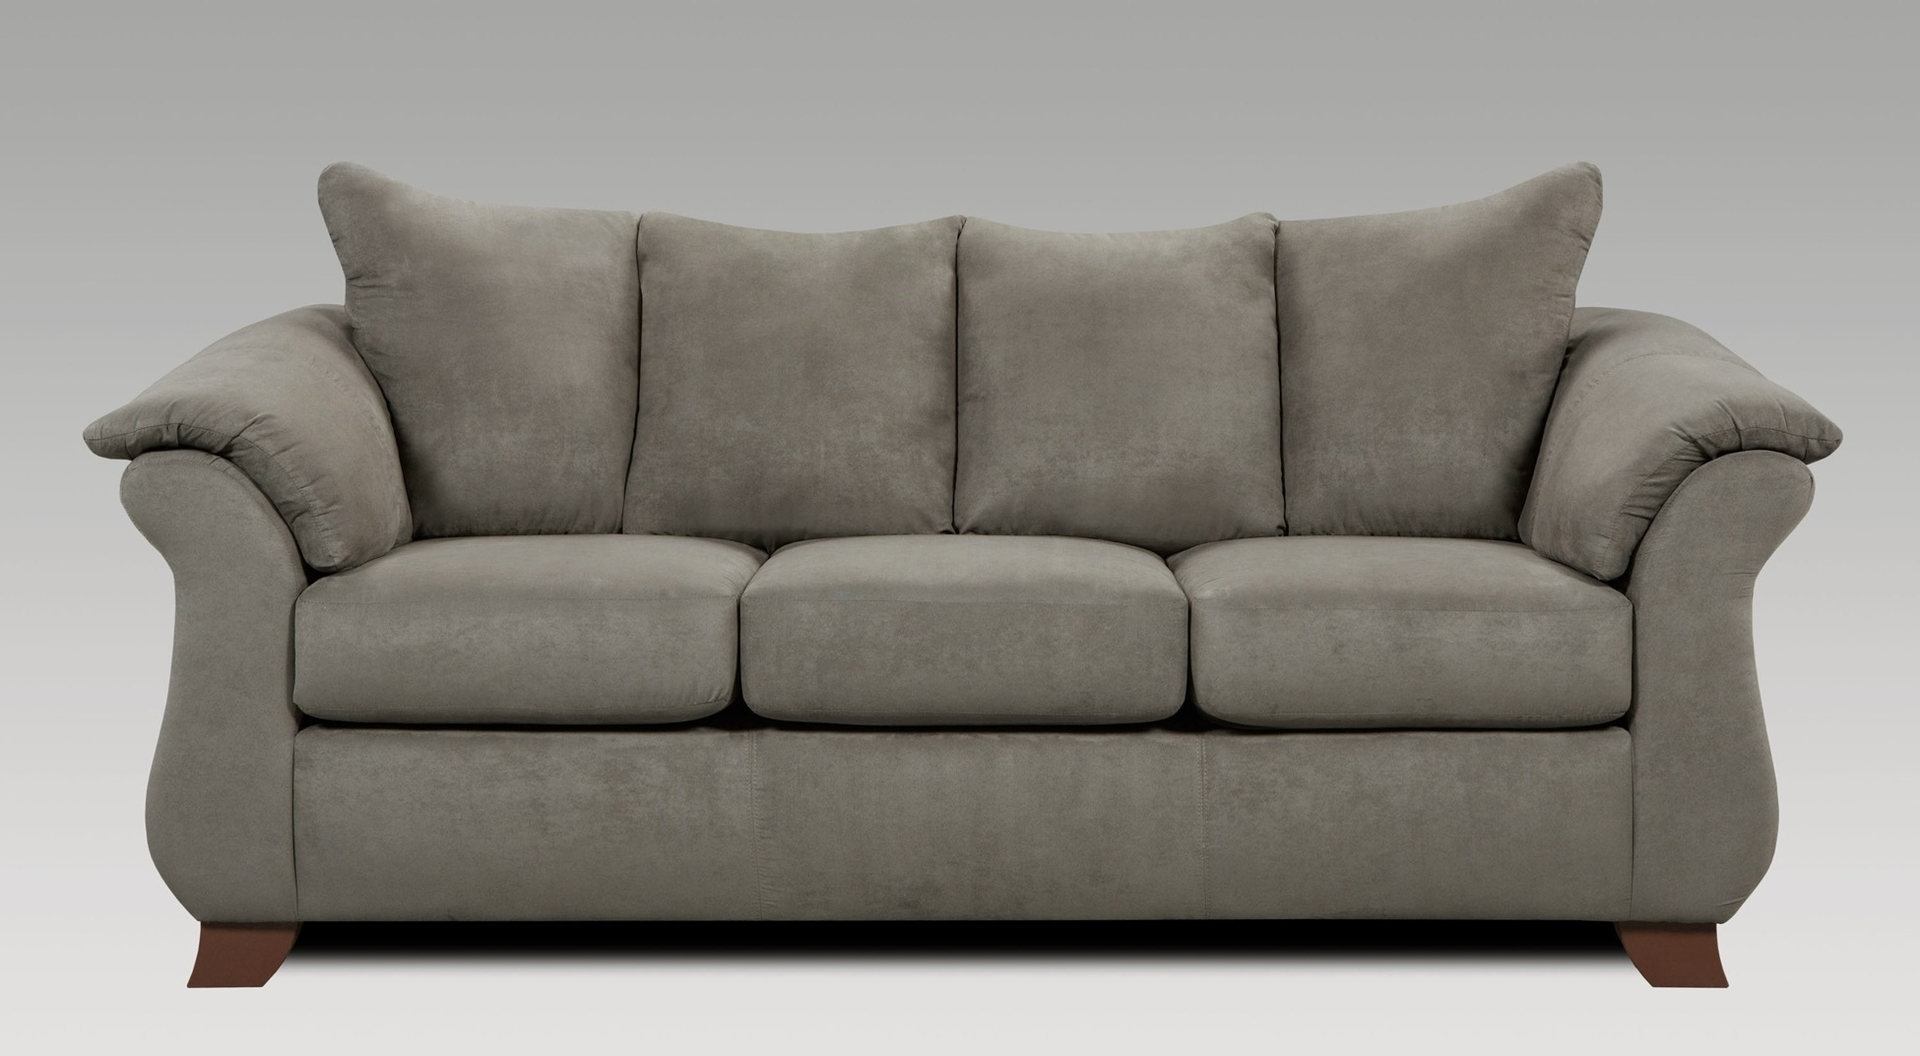 Well Known Sofas: Tuscaloosa, Al: Southeastern Furniture With Tuscaloosa Sectional Sofas (View 4 of 15)